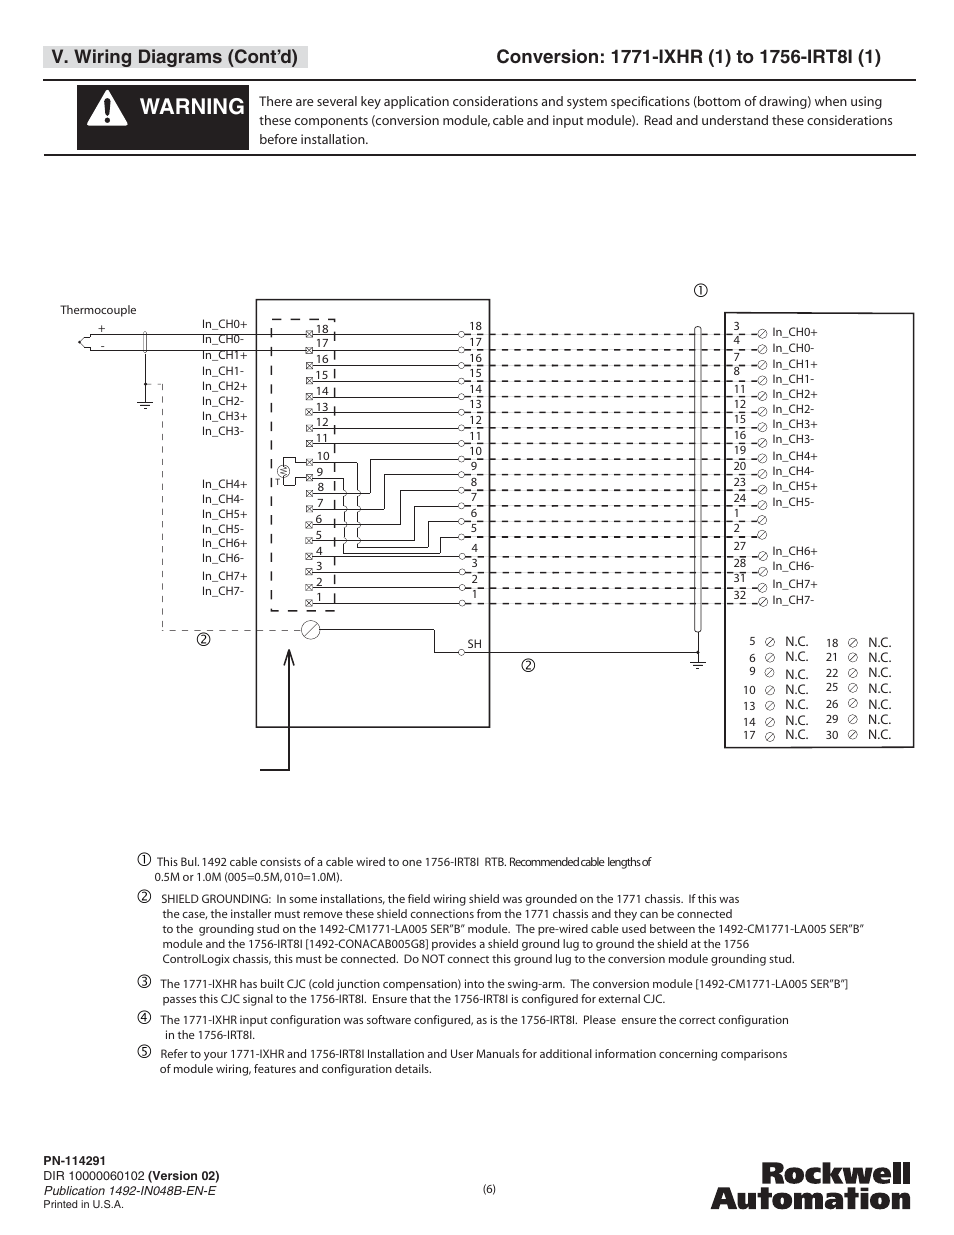 hight resolution of warning v wiring diagrams cont d rockwell automation 1492 cm1771 la005 analog i o conversion module user manual page 6 8